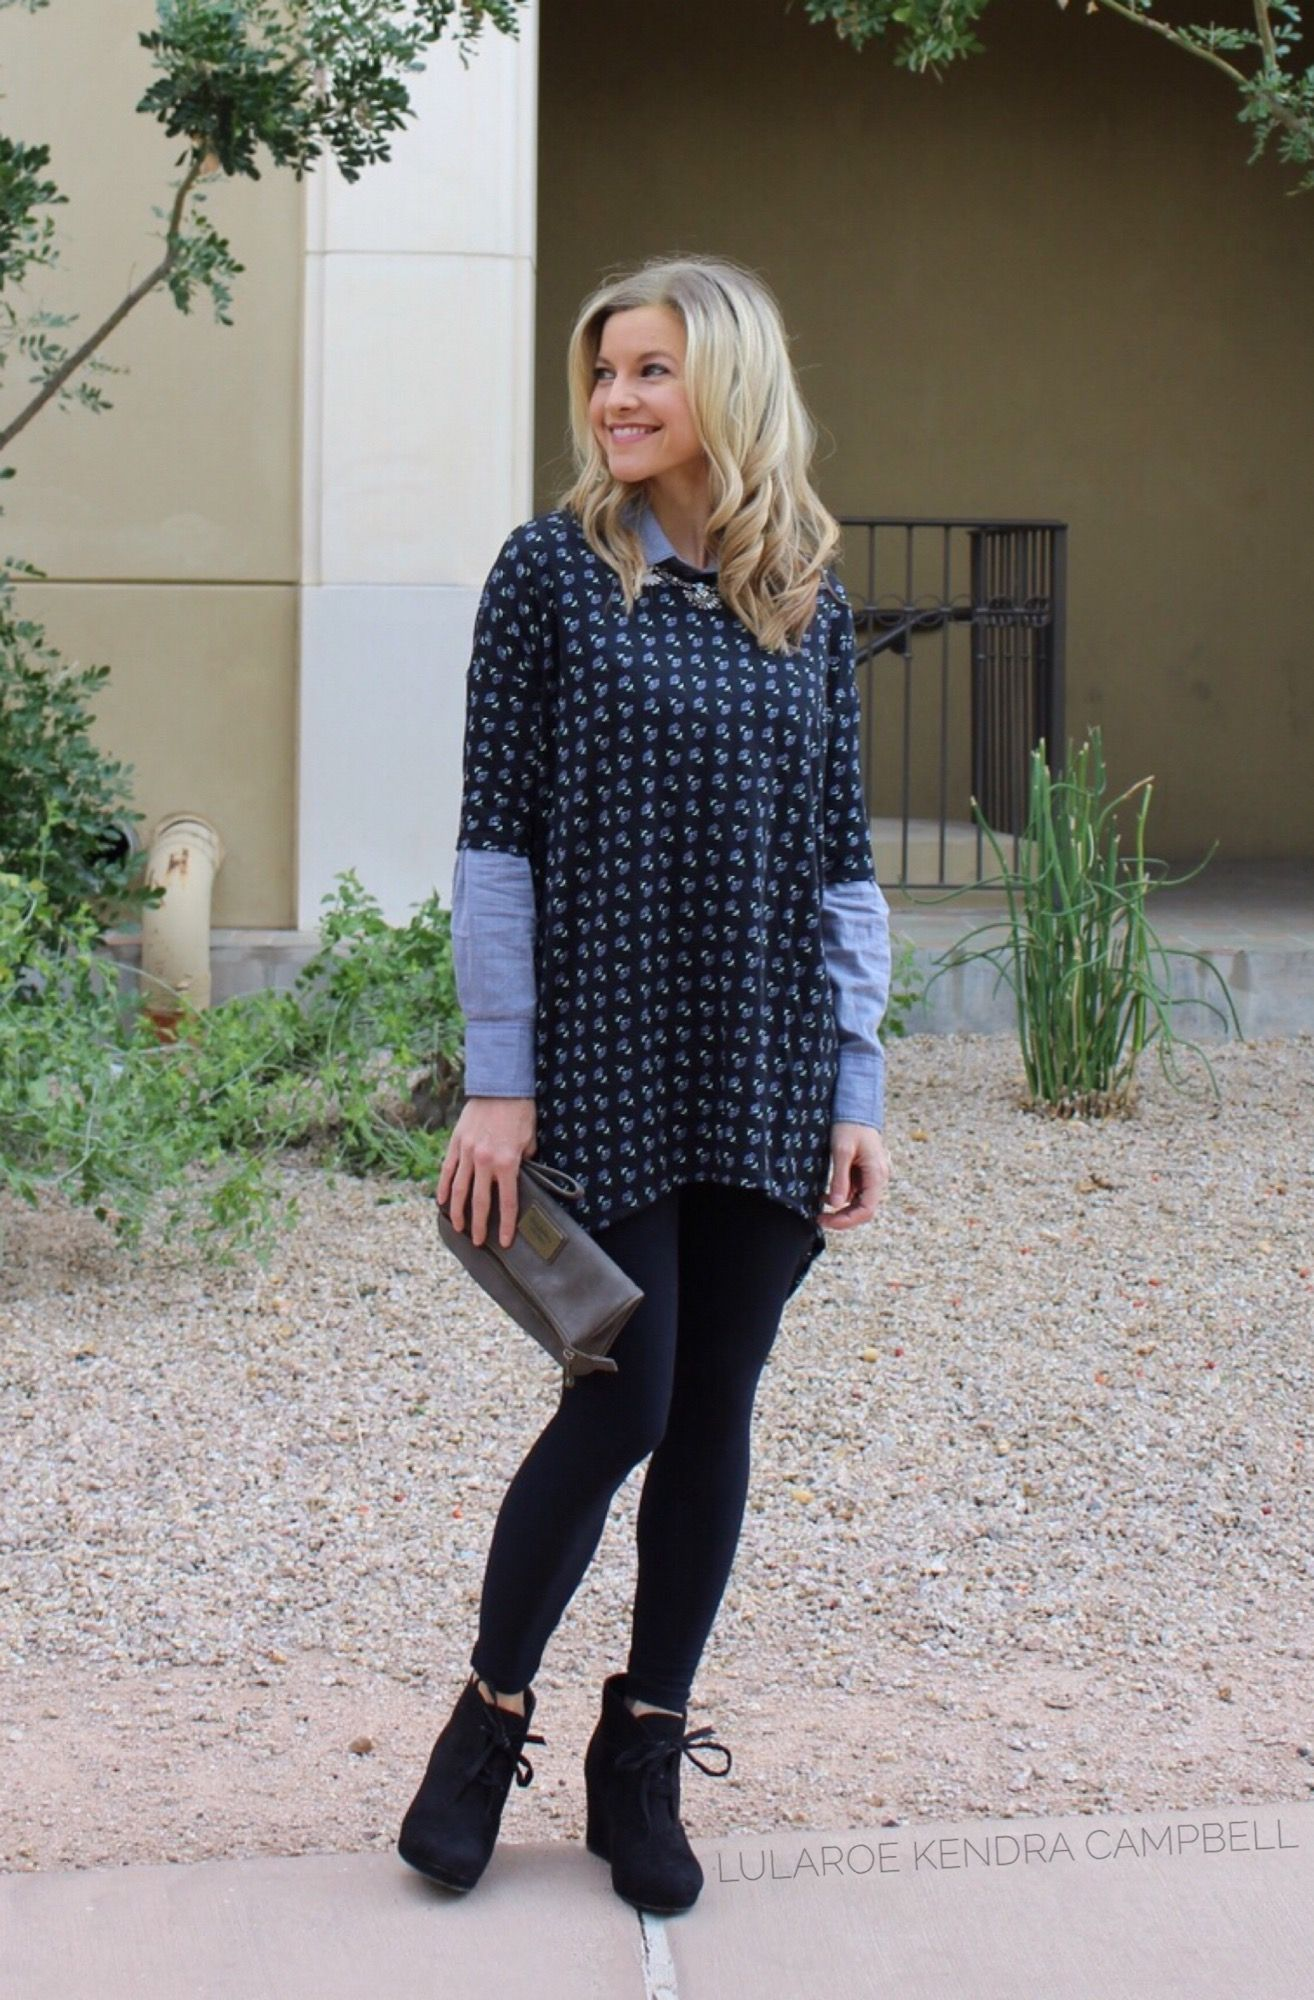 9a0cadcae1c45 I love adding a collared shirt under the LuLaRoe Irma tunic to create a new  look! Perfect for cooler weather.  chambray  lularoe Click for more style  ...